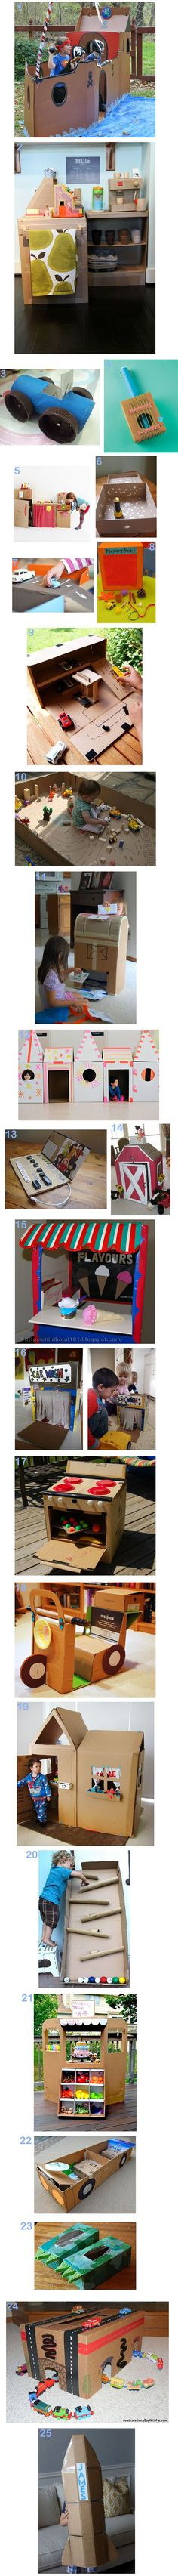 25 Fun Ideas for a Cardboard Box.